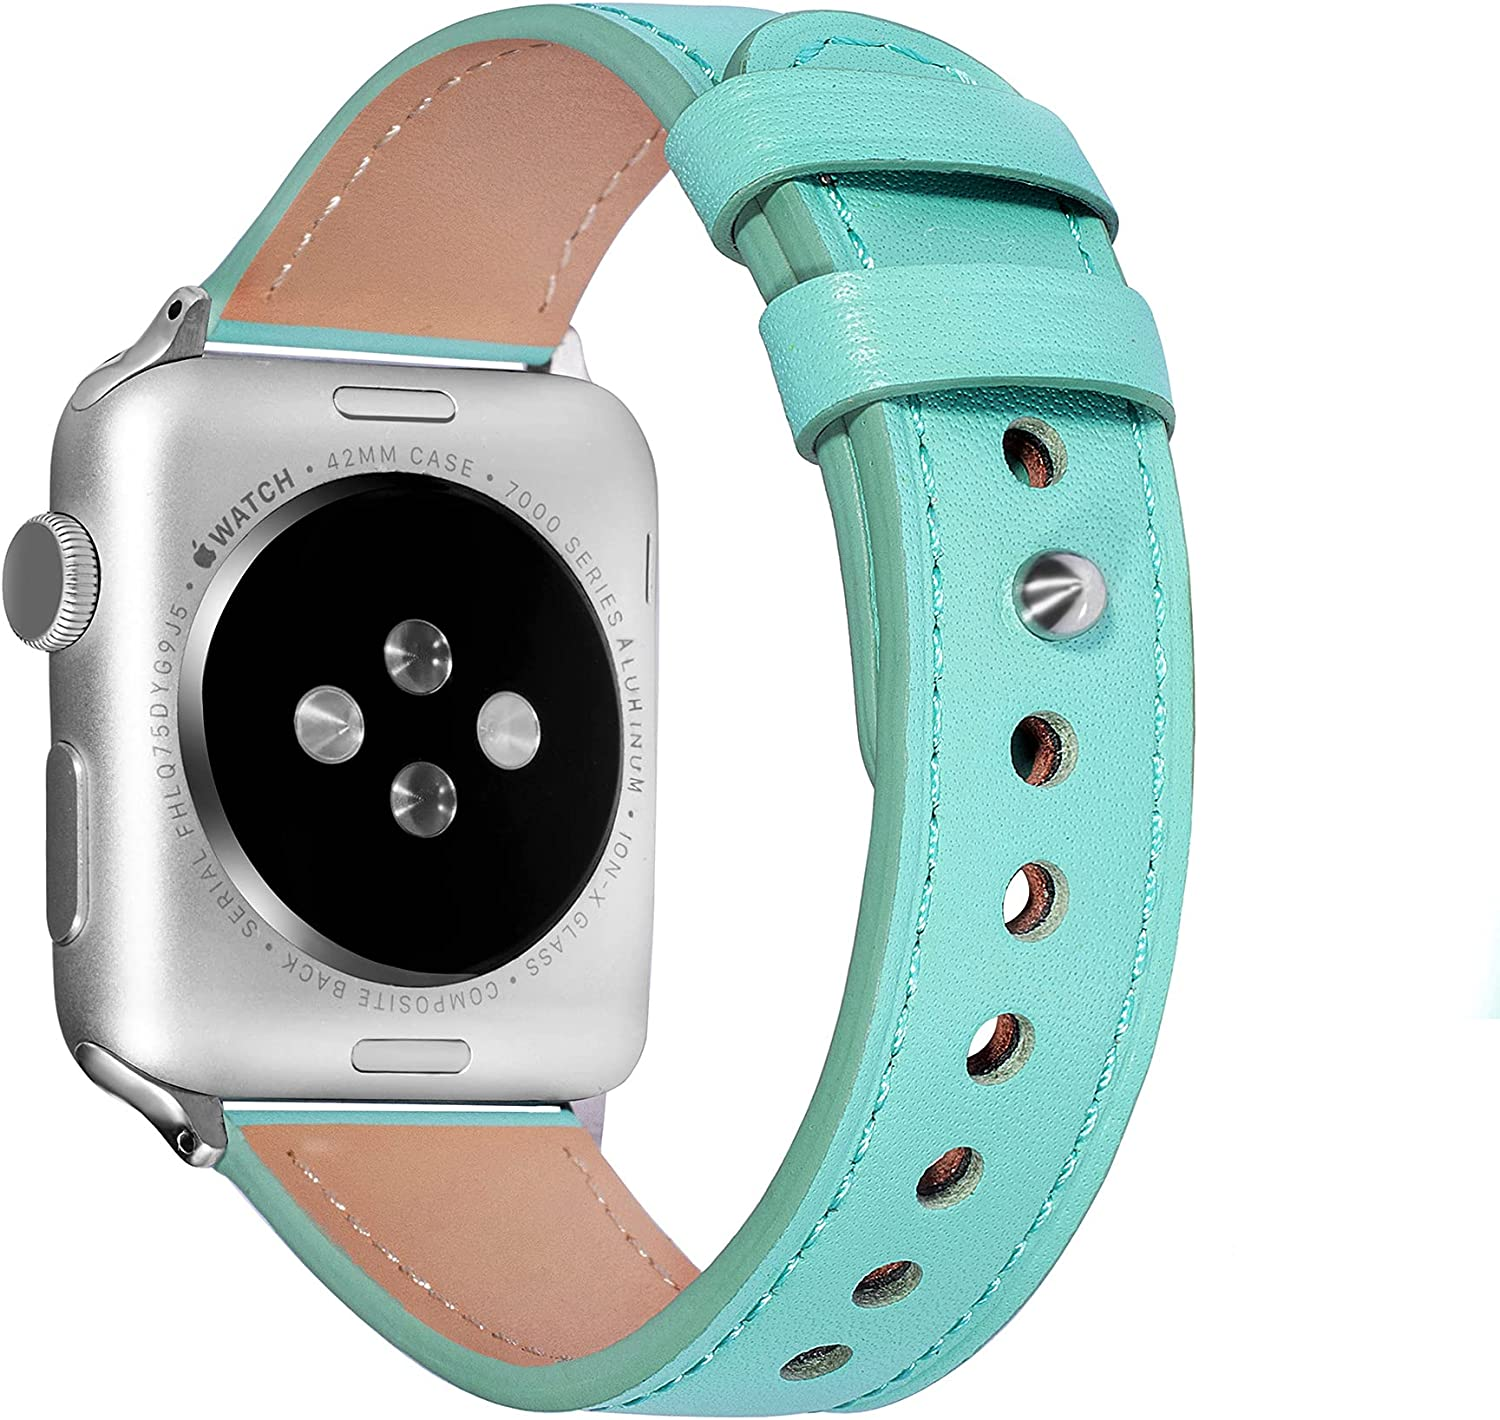 SLIFTER Leather Bands - Classical Snap Button Design & Soft Genuine Leather version OR Additional Bracelet Version, Compatible with Apple watch Series SE/6/5/4/3/2/1 38mm 40mm 42mm 44mm Men Women